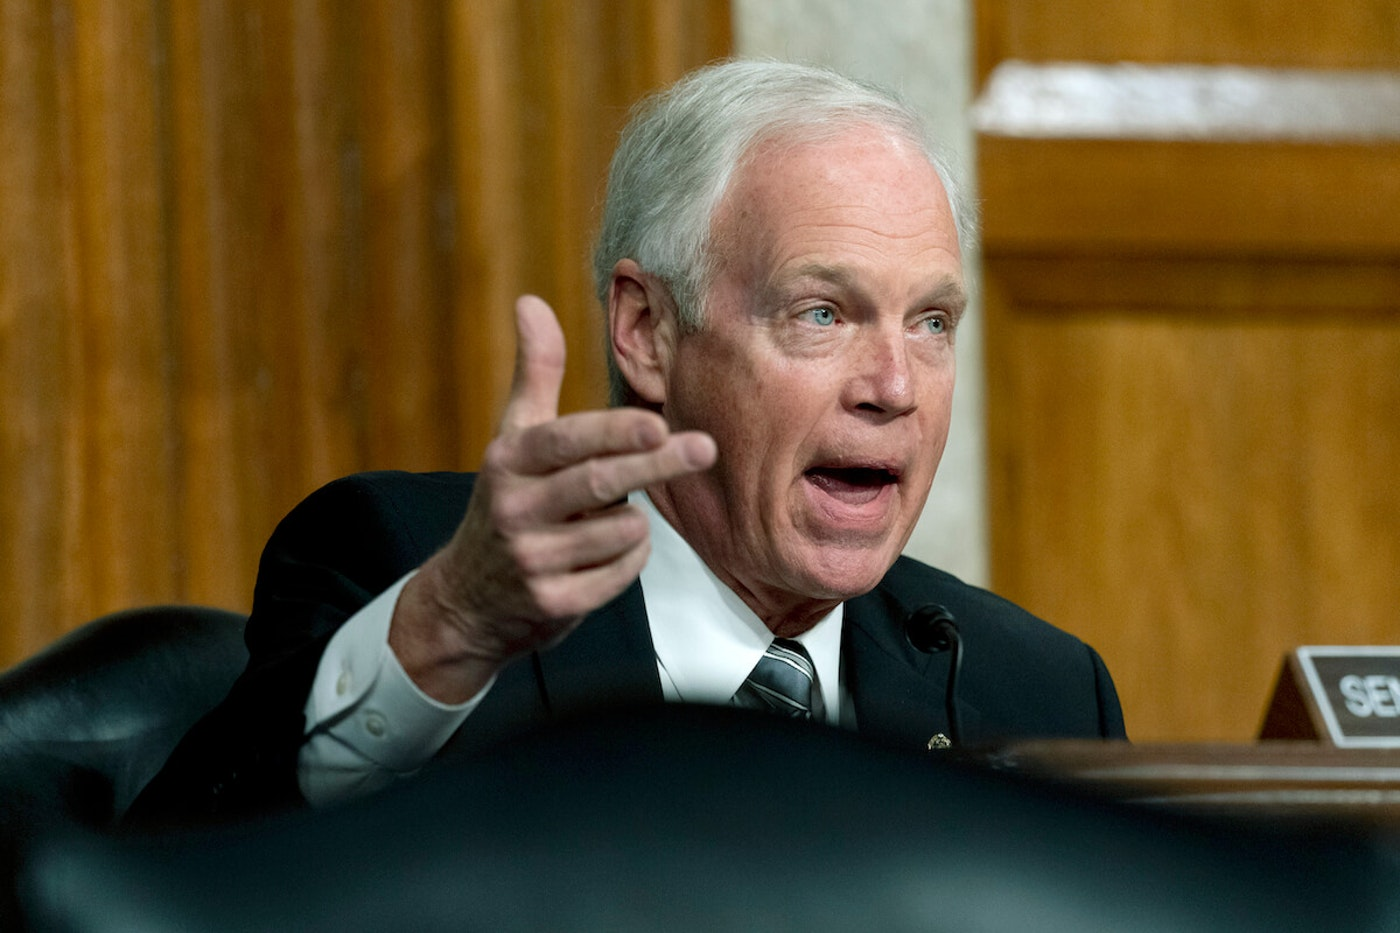 Sen. Ron Johnson, R-Wisc., speaks at a Senate Homeland Security and Governmental Affairs hearing on Feb. 23, 2021. (AP Photo/Andrew Harnik, Pool)